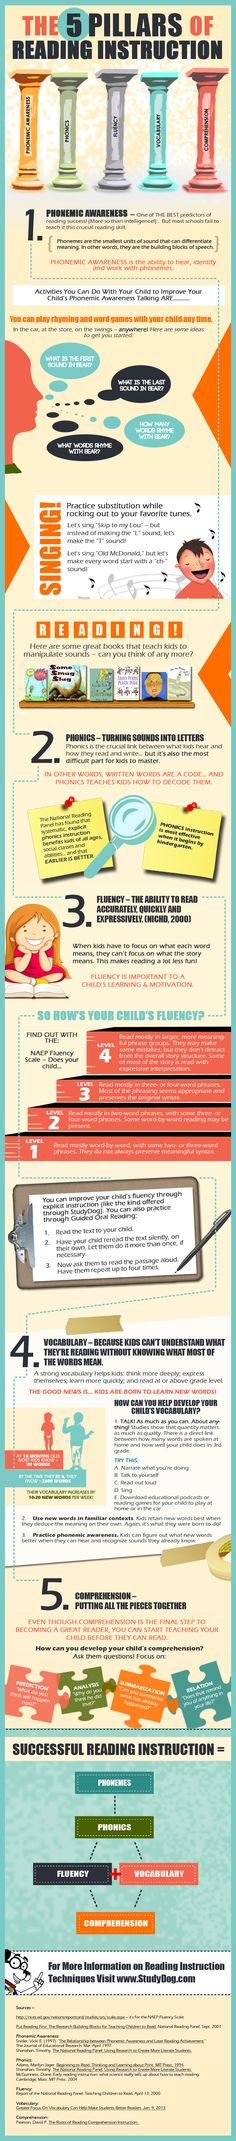 This infographic goes over the 5 pillars of reading instruction for kids focusing on the most important aspects of reading.